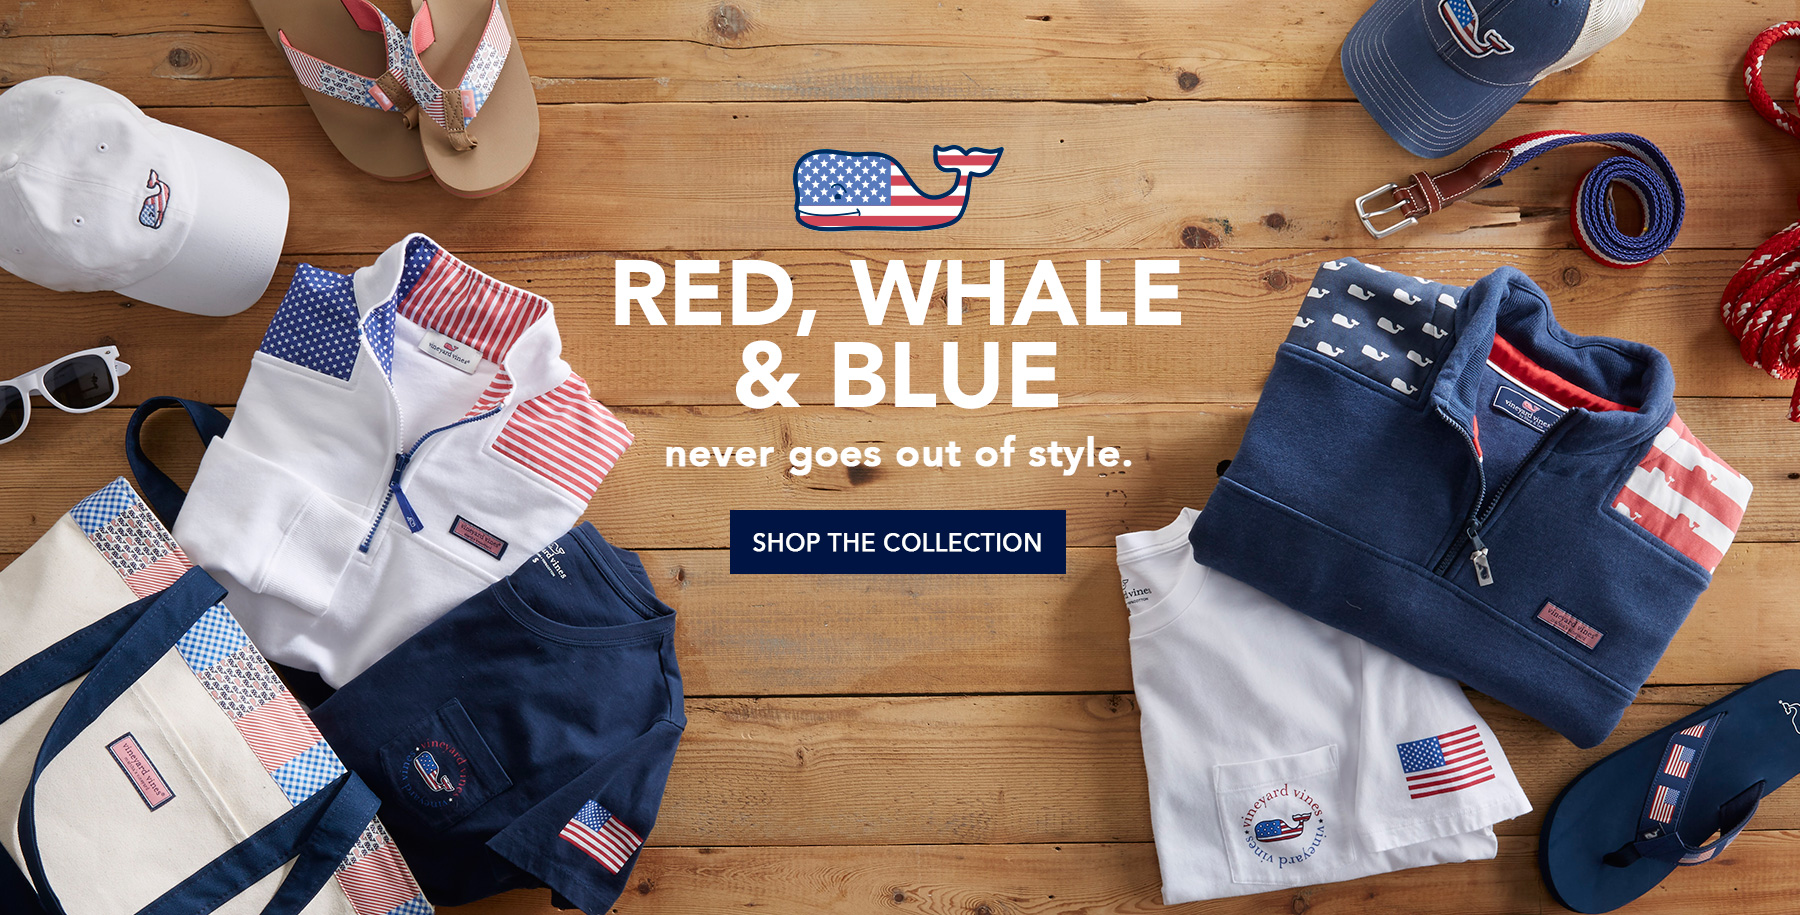 Red, whale & Blue never goes out of style. Shop the collection.